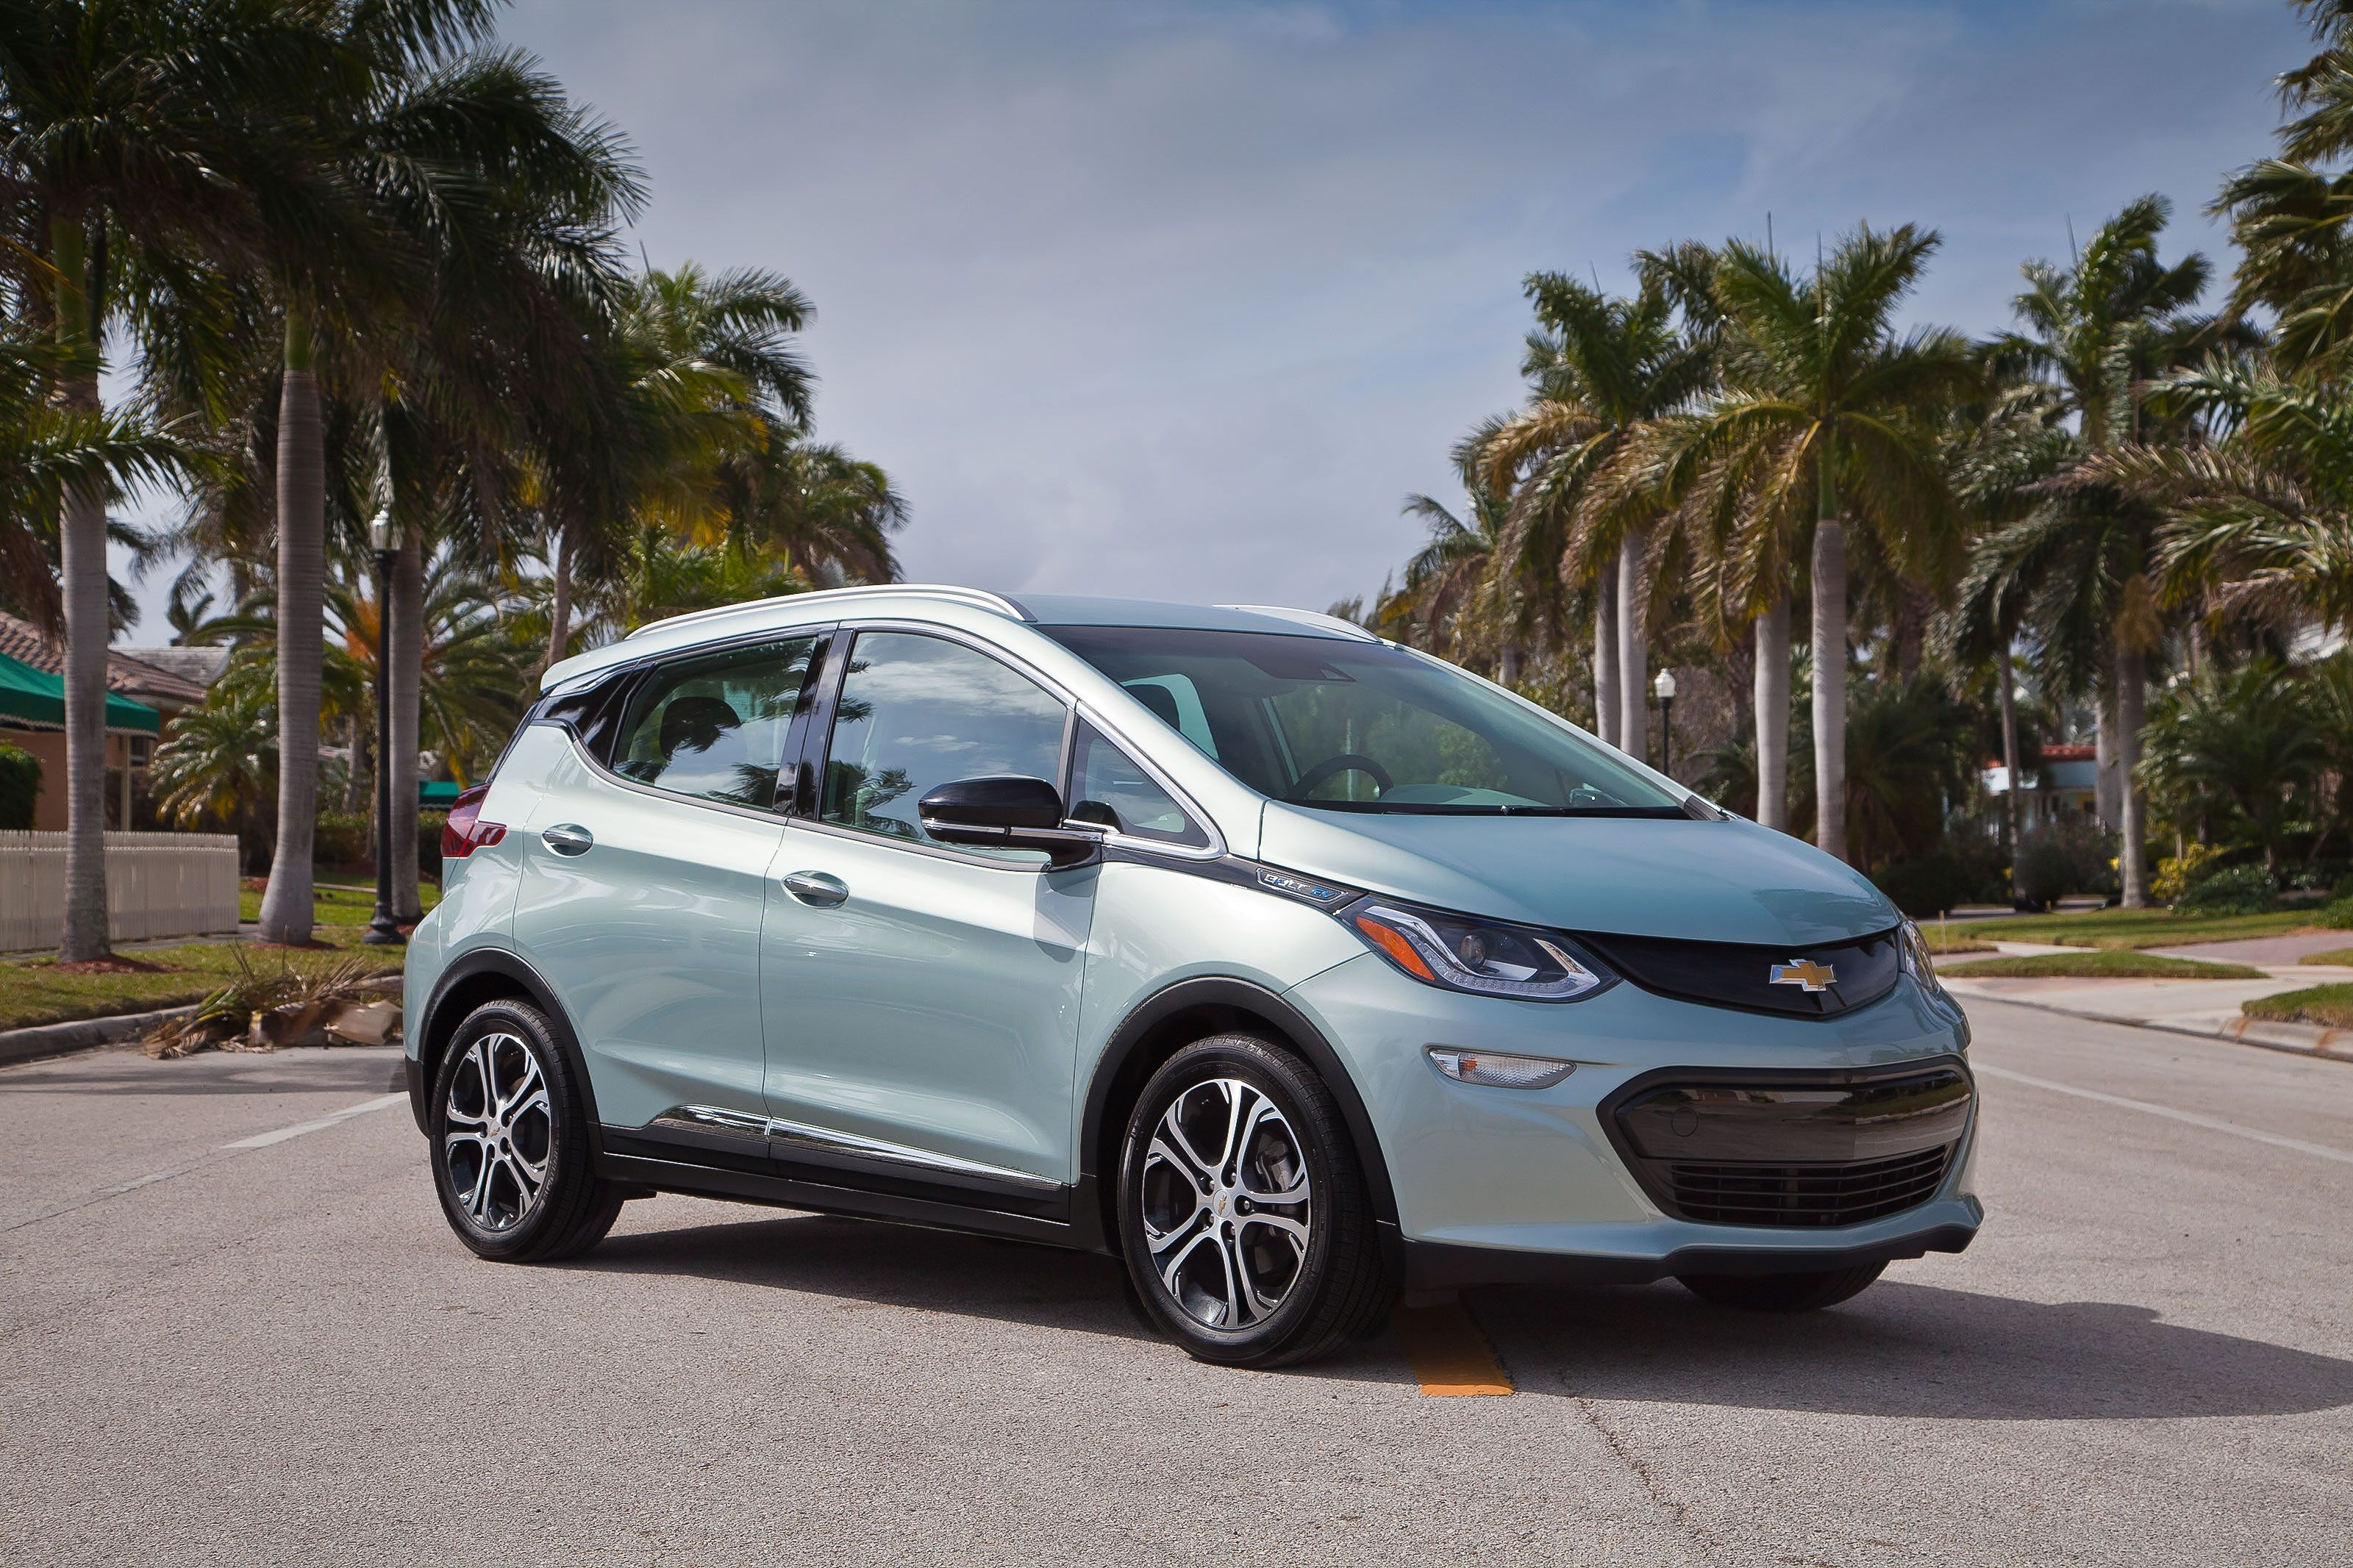 2019 Chevrolet Bolt Chevrolet Bolt Latest Cars